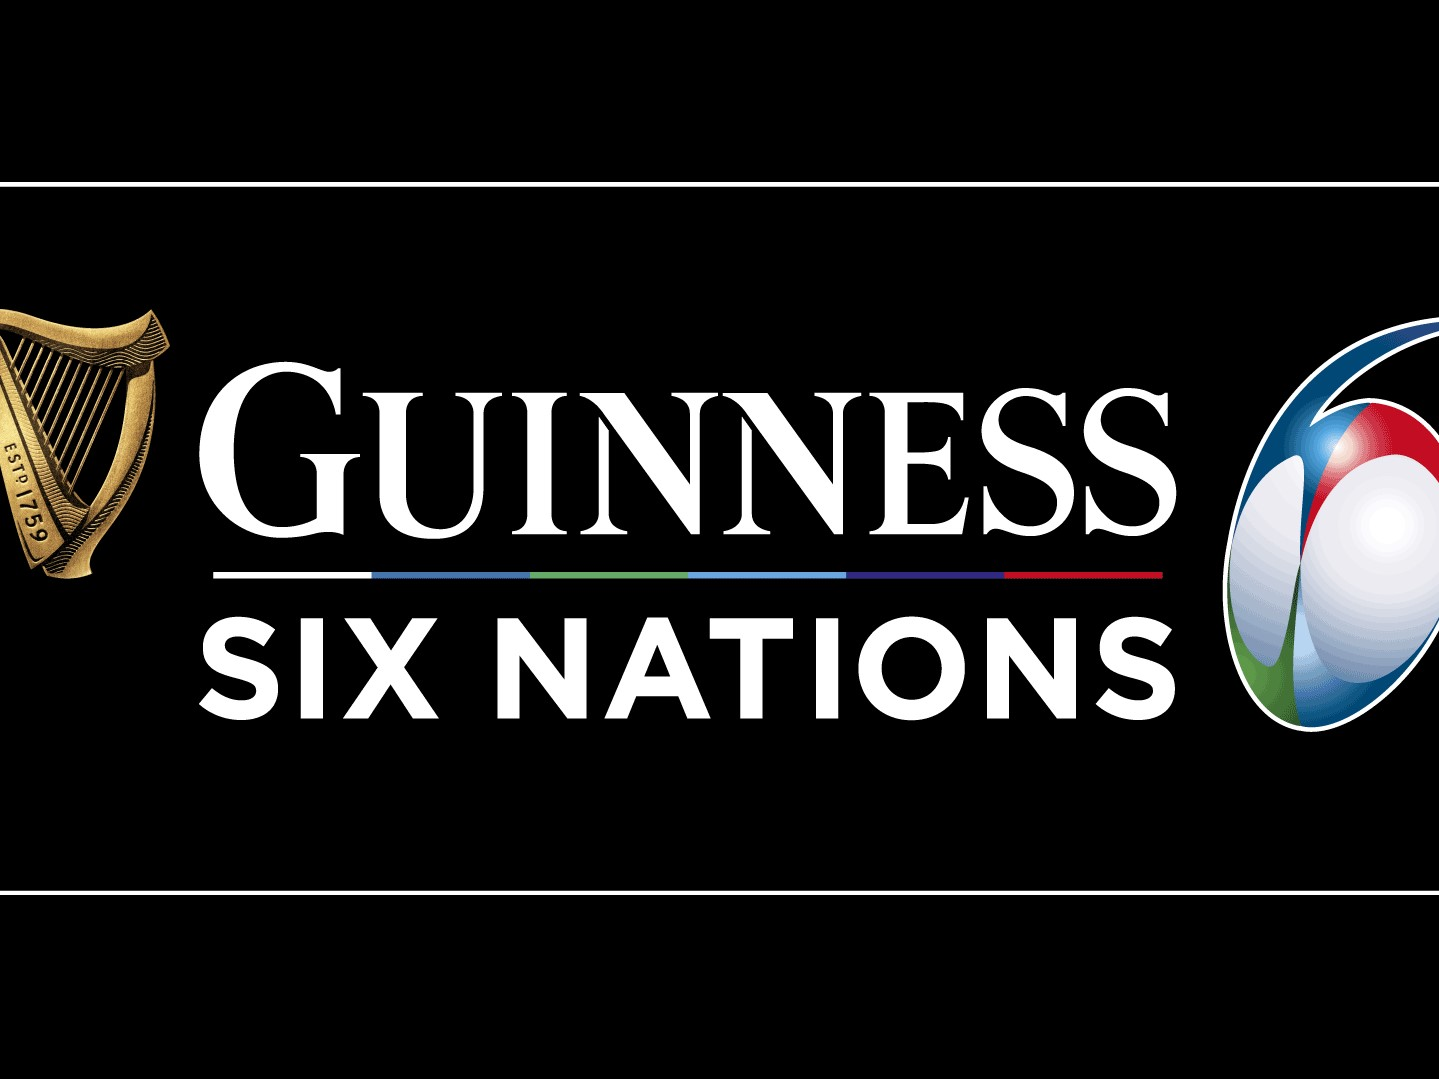 Guinness 6 Nations